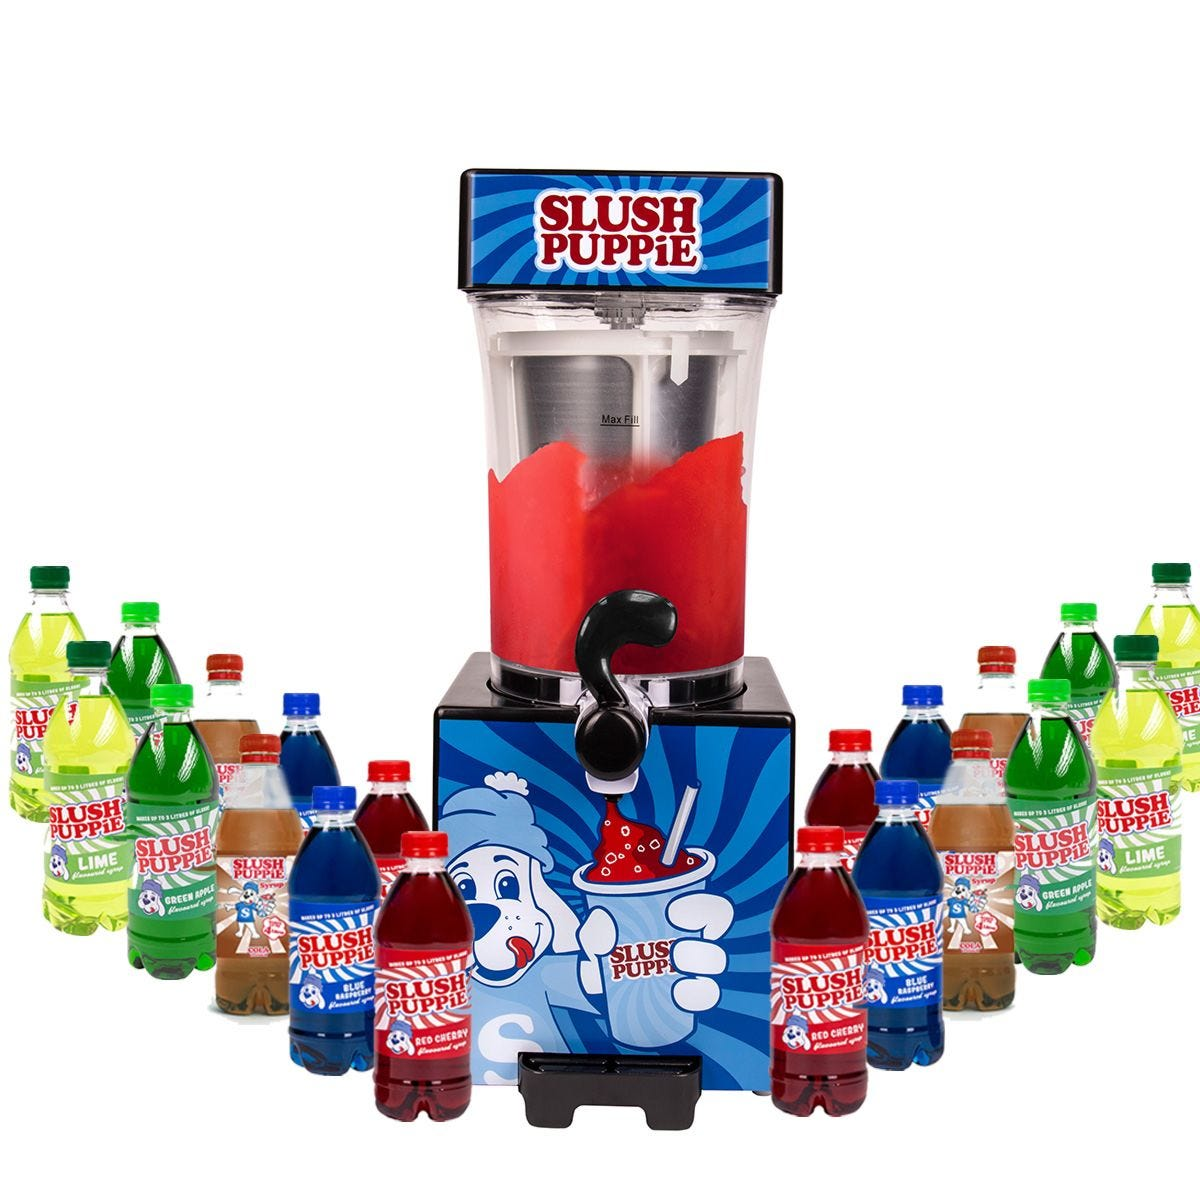 Slush Puppie with Twenty Syrups - Blue Raspberry, Green Apple, Cola, Lime and Cherry